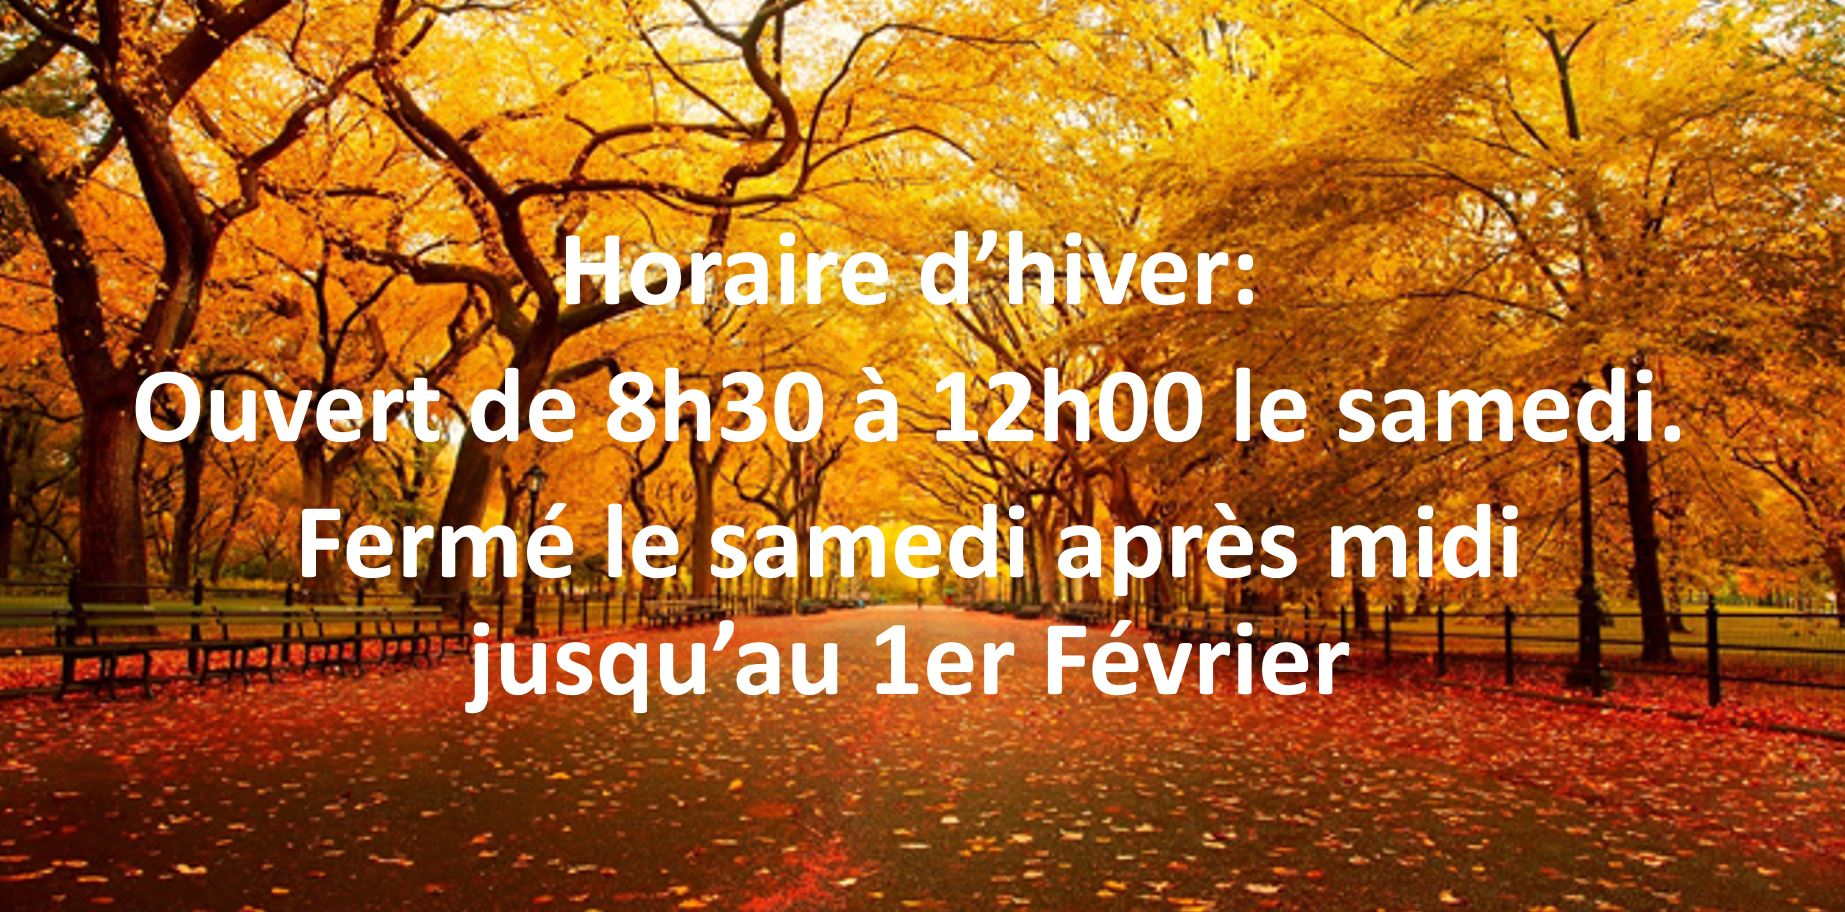 horaire-dhivers